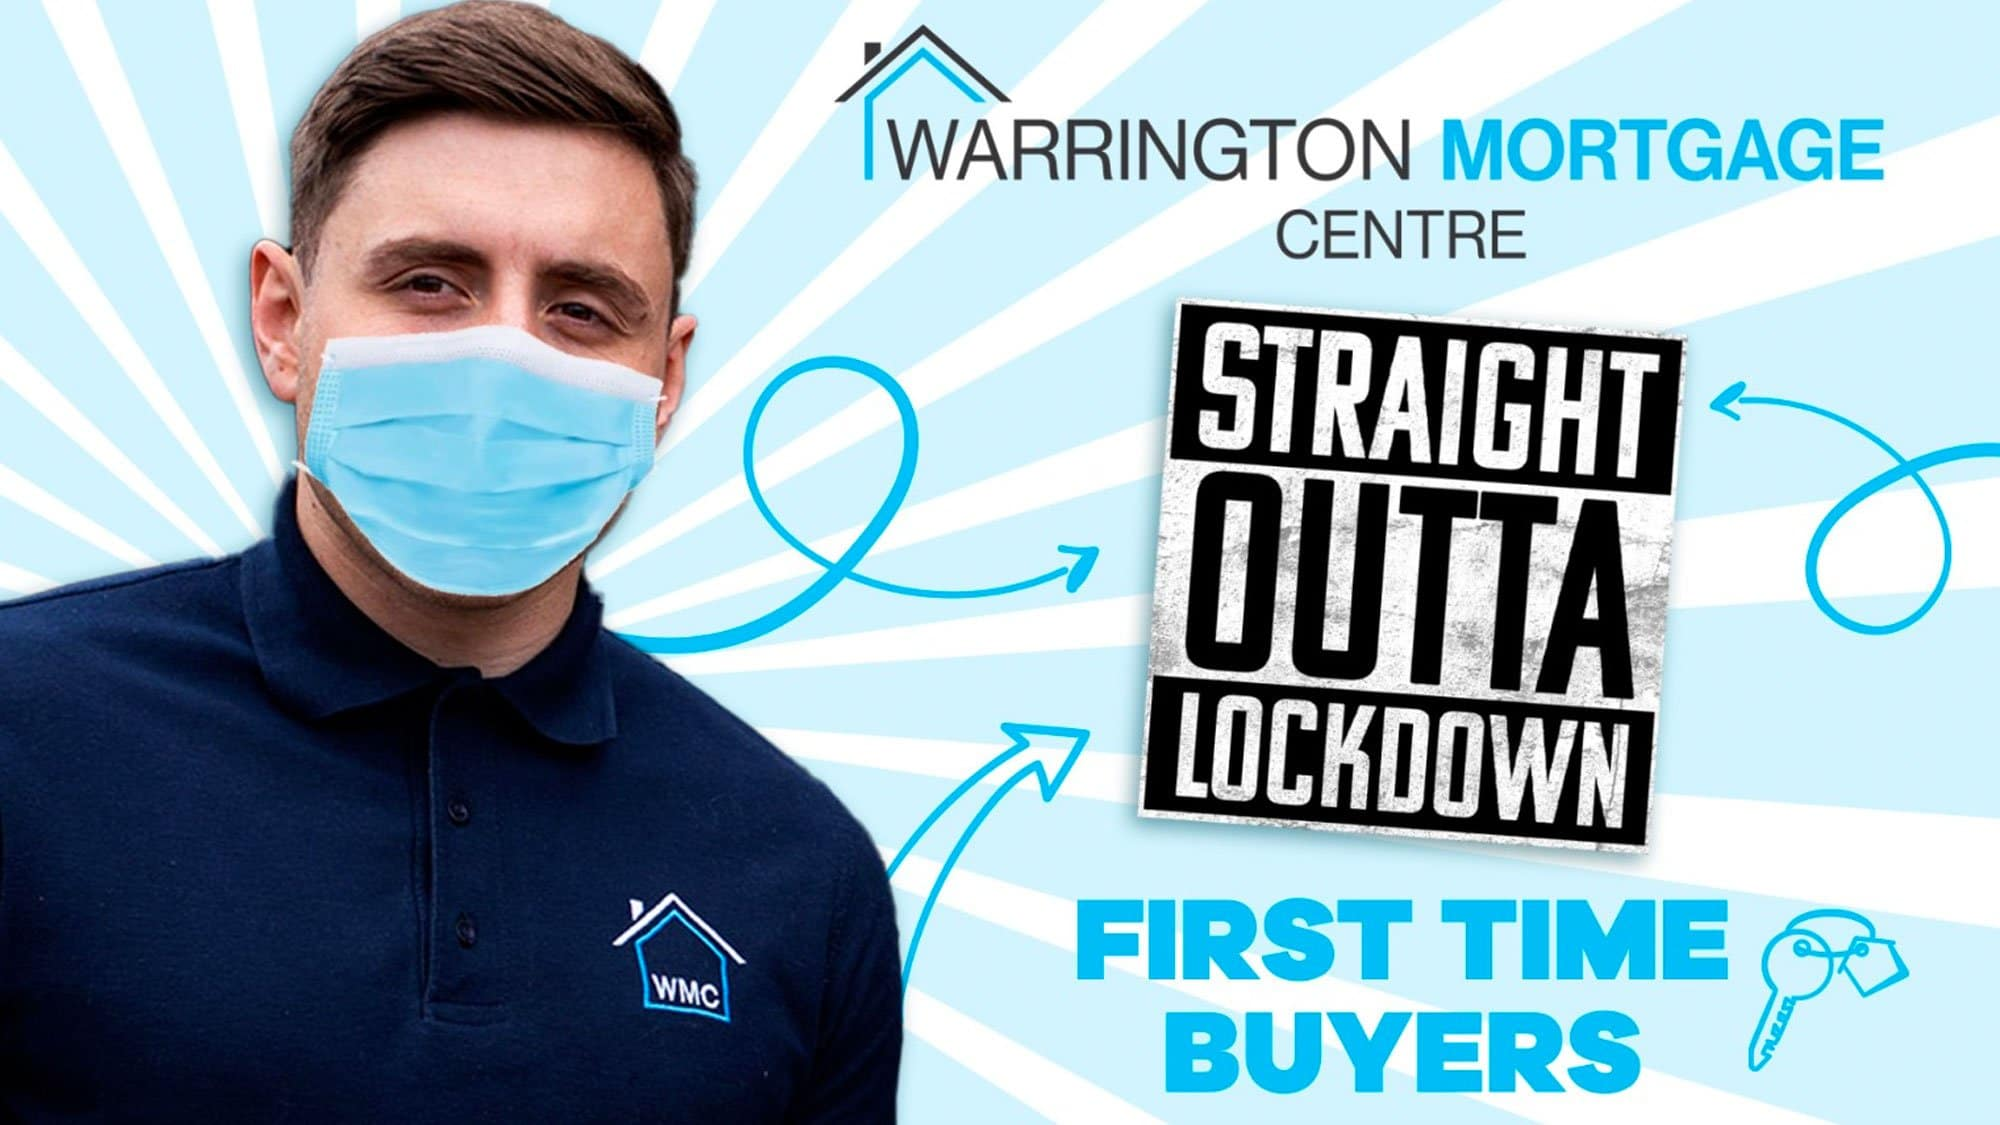 First Time Buyer Straight Outta Lockdown? We Can Help!